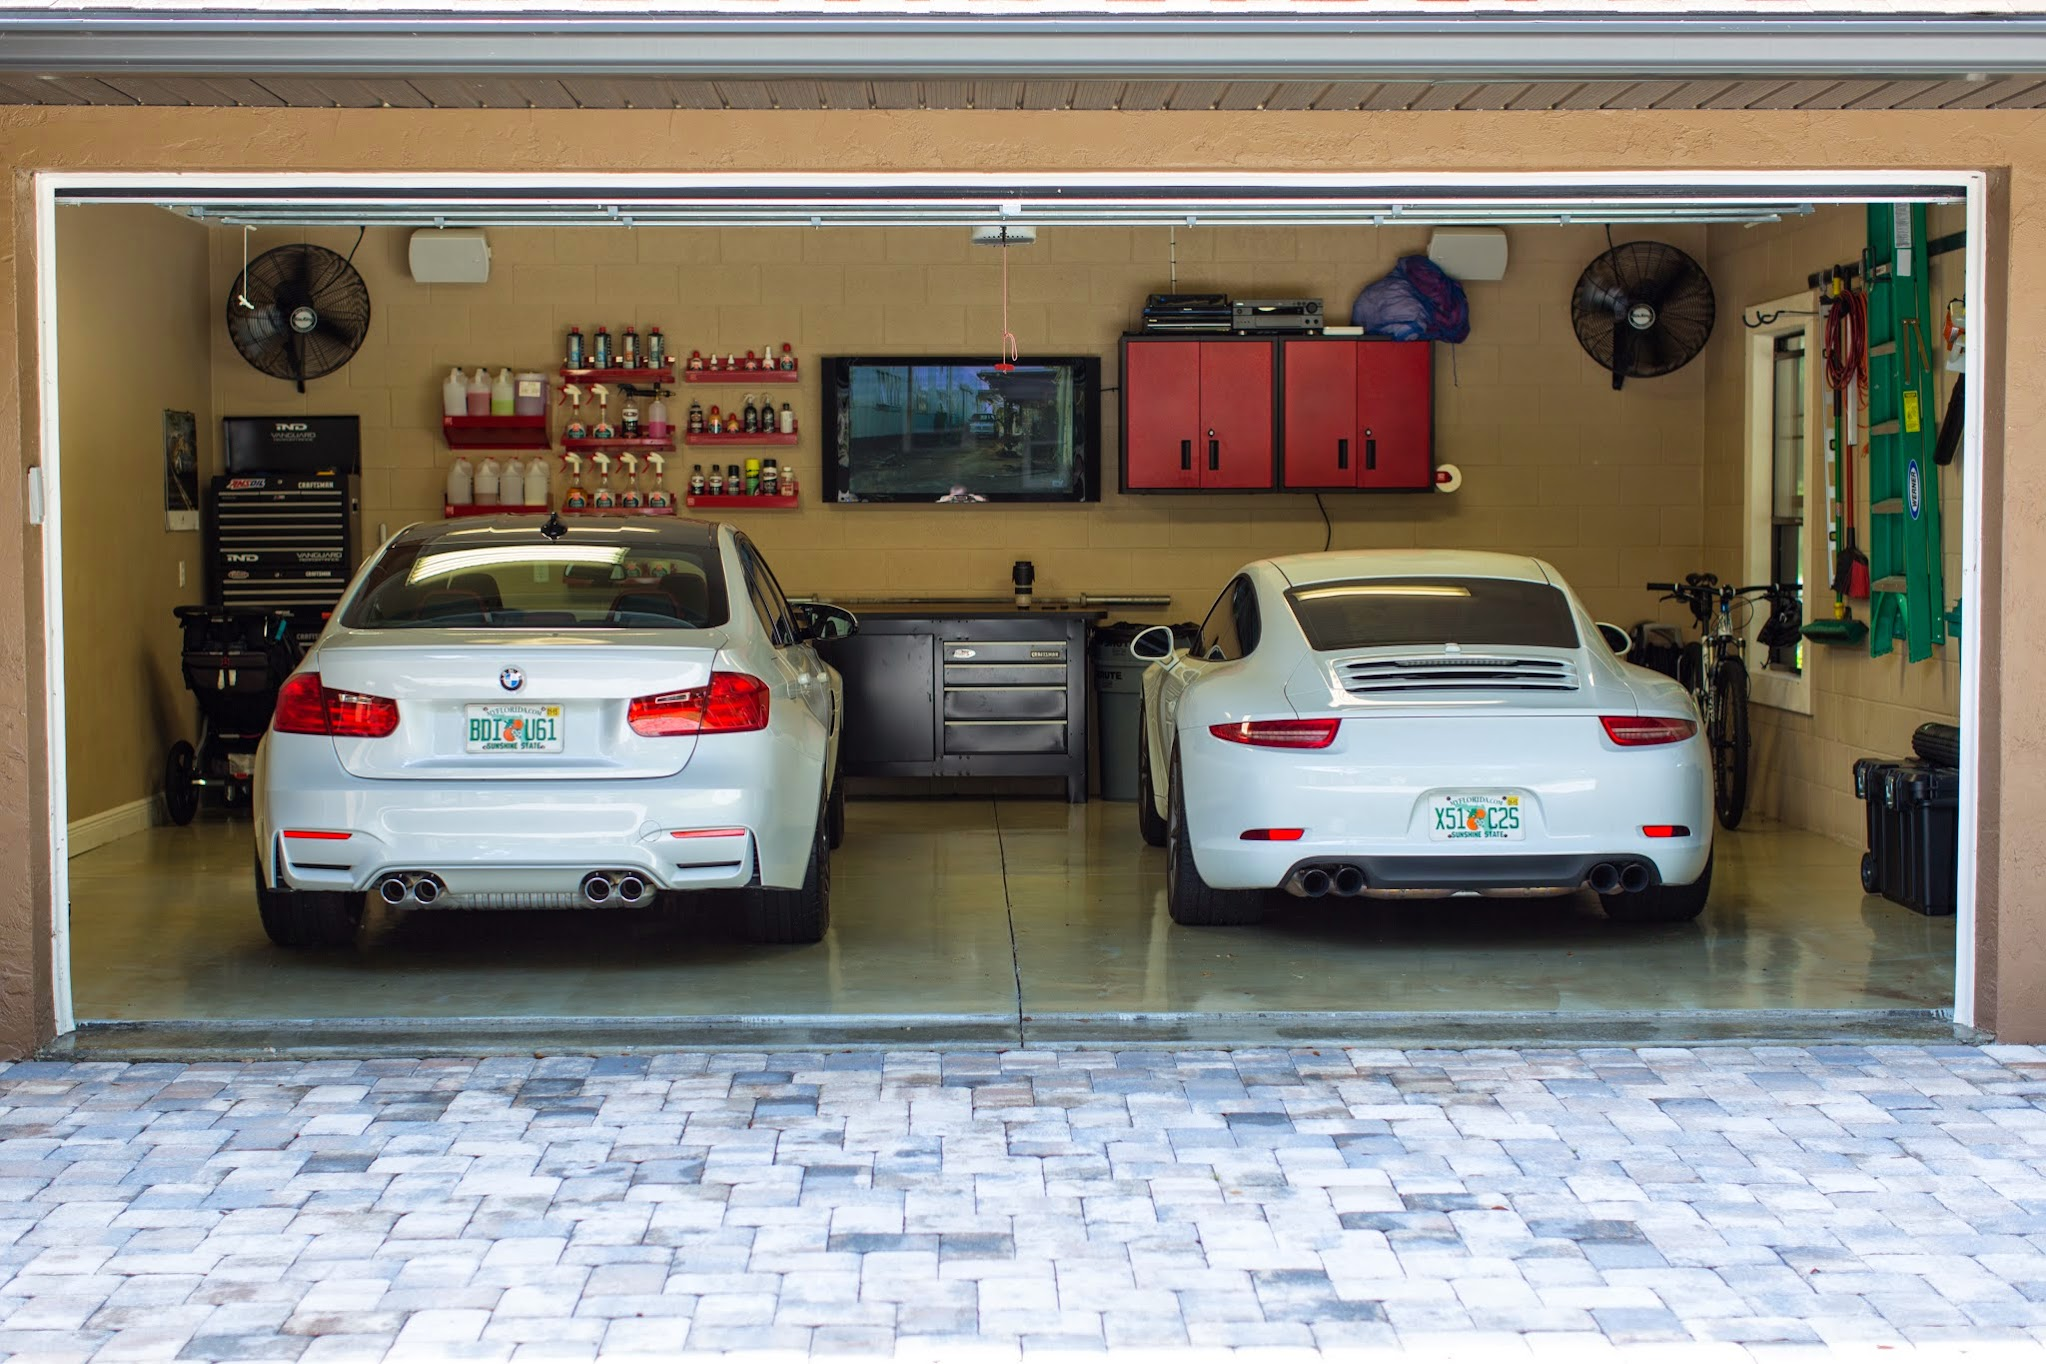 Two Car Garages My Comparison Of The 991 911 Vs F80 M3 Rennlist